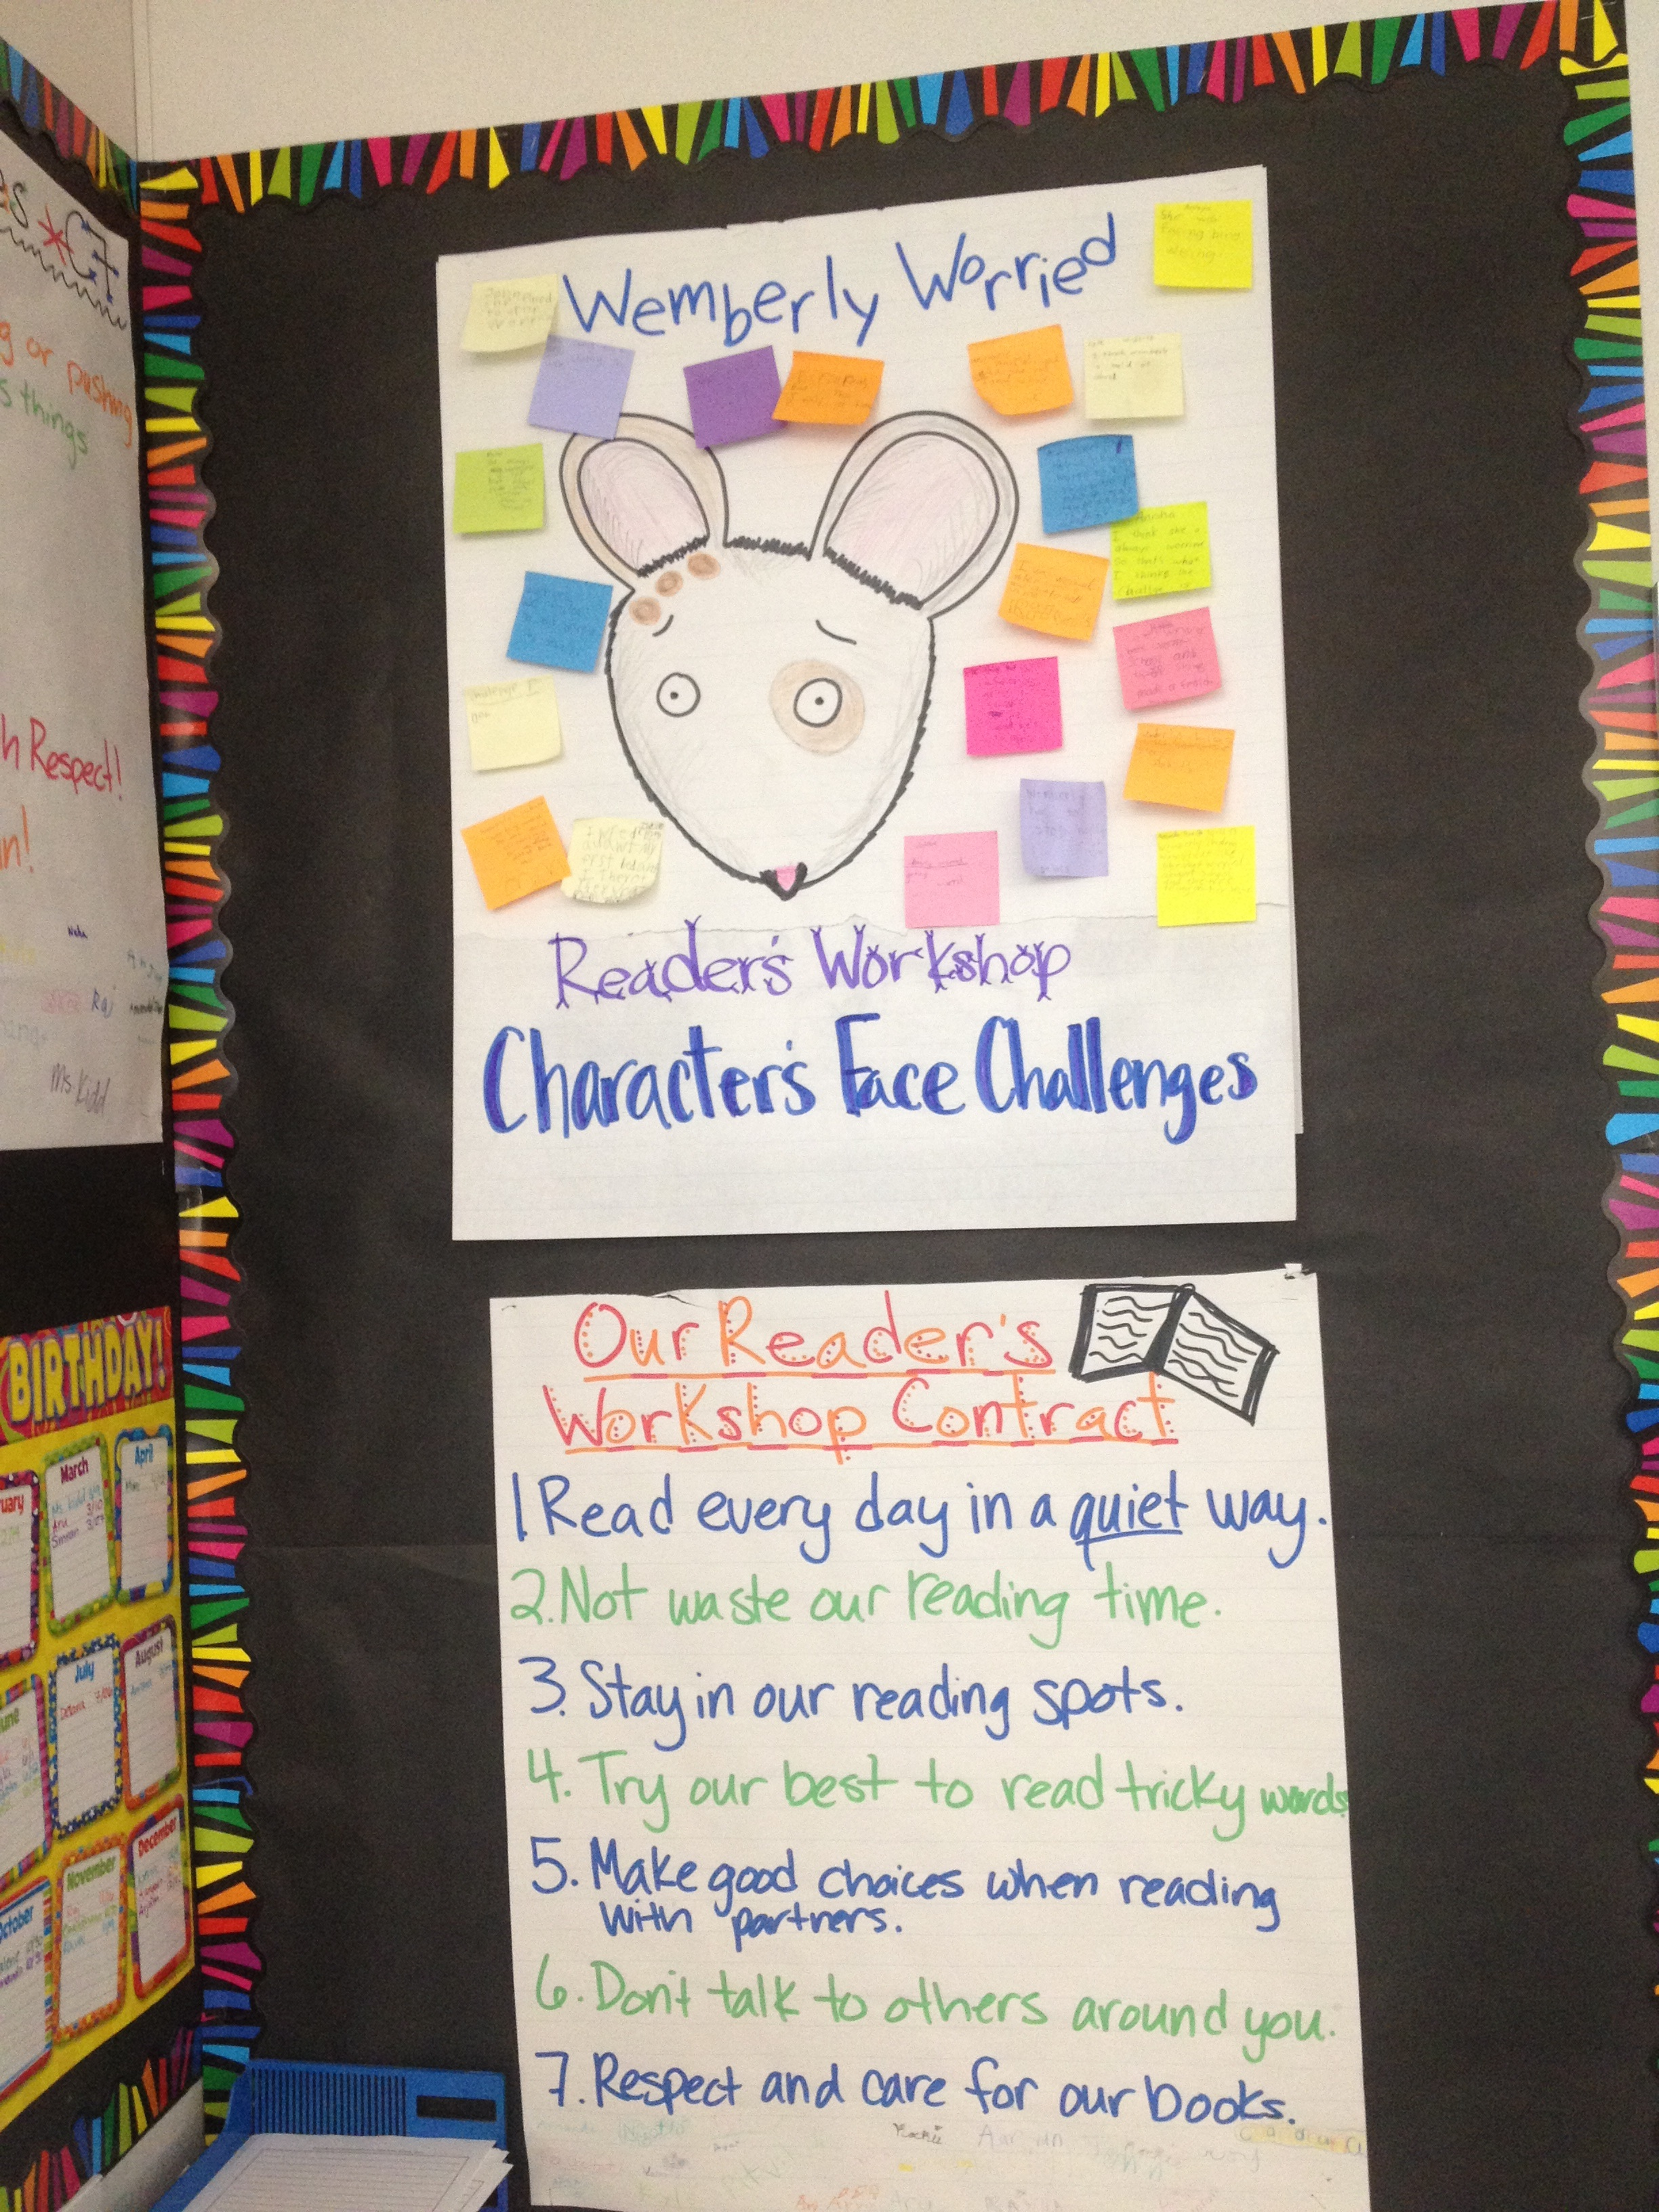 Characters Face Challenges